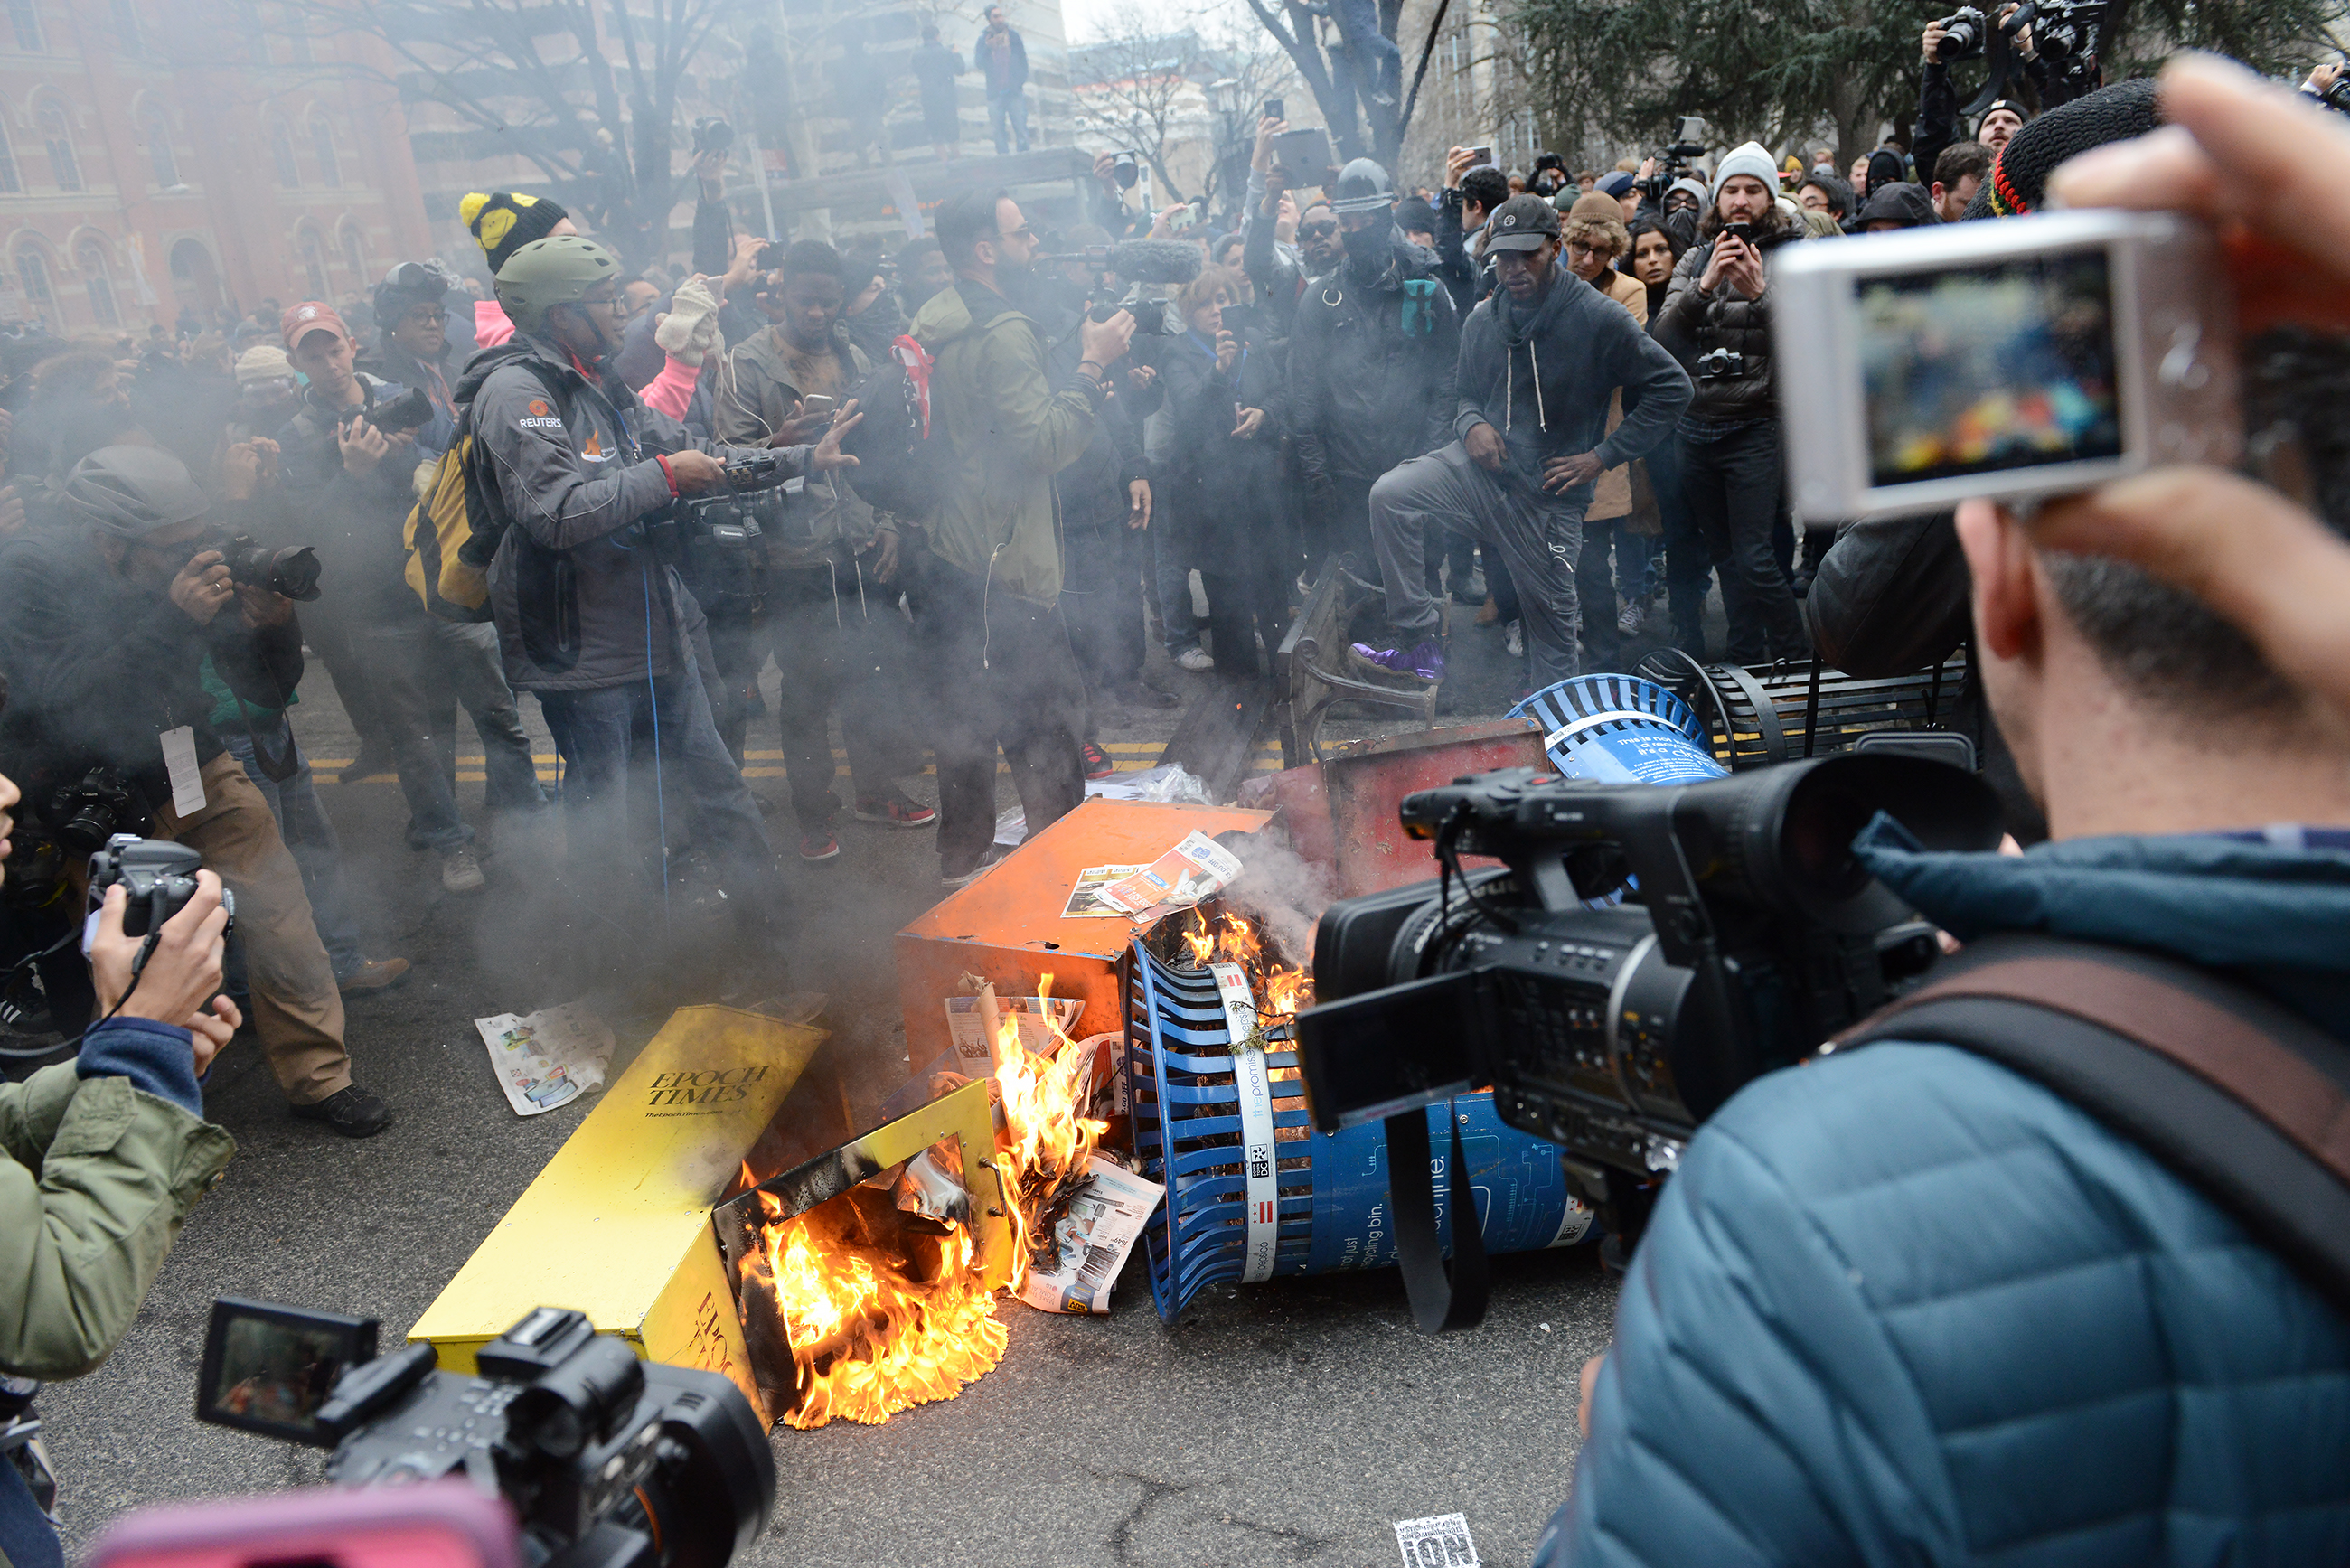 20170120rldInauguration15 A crowd gathers around a garbage can fire lit by protesters at 13th and K Streets NW in Washington, DC, on Friday afternoon.